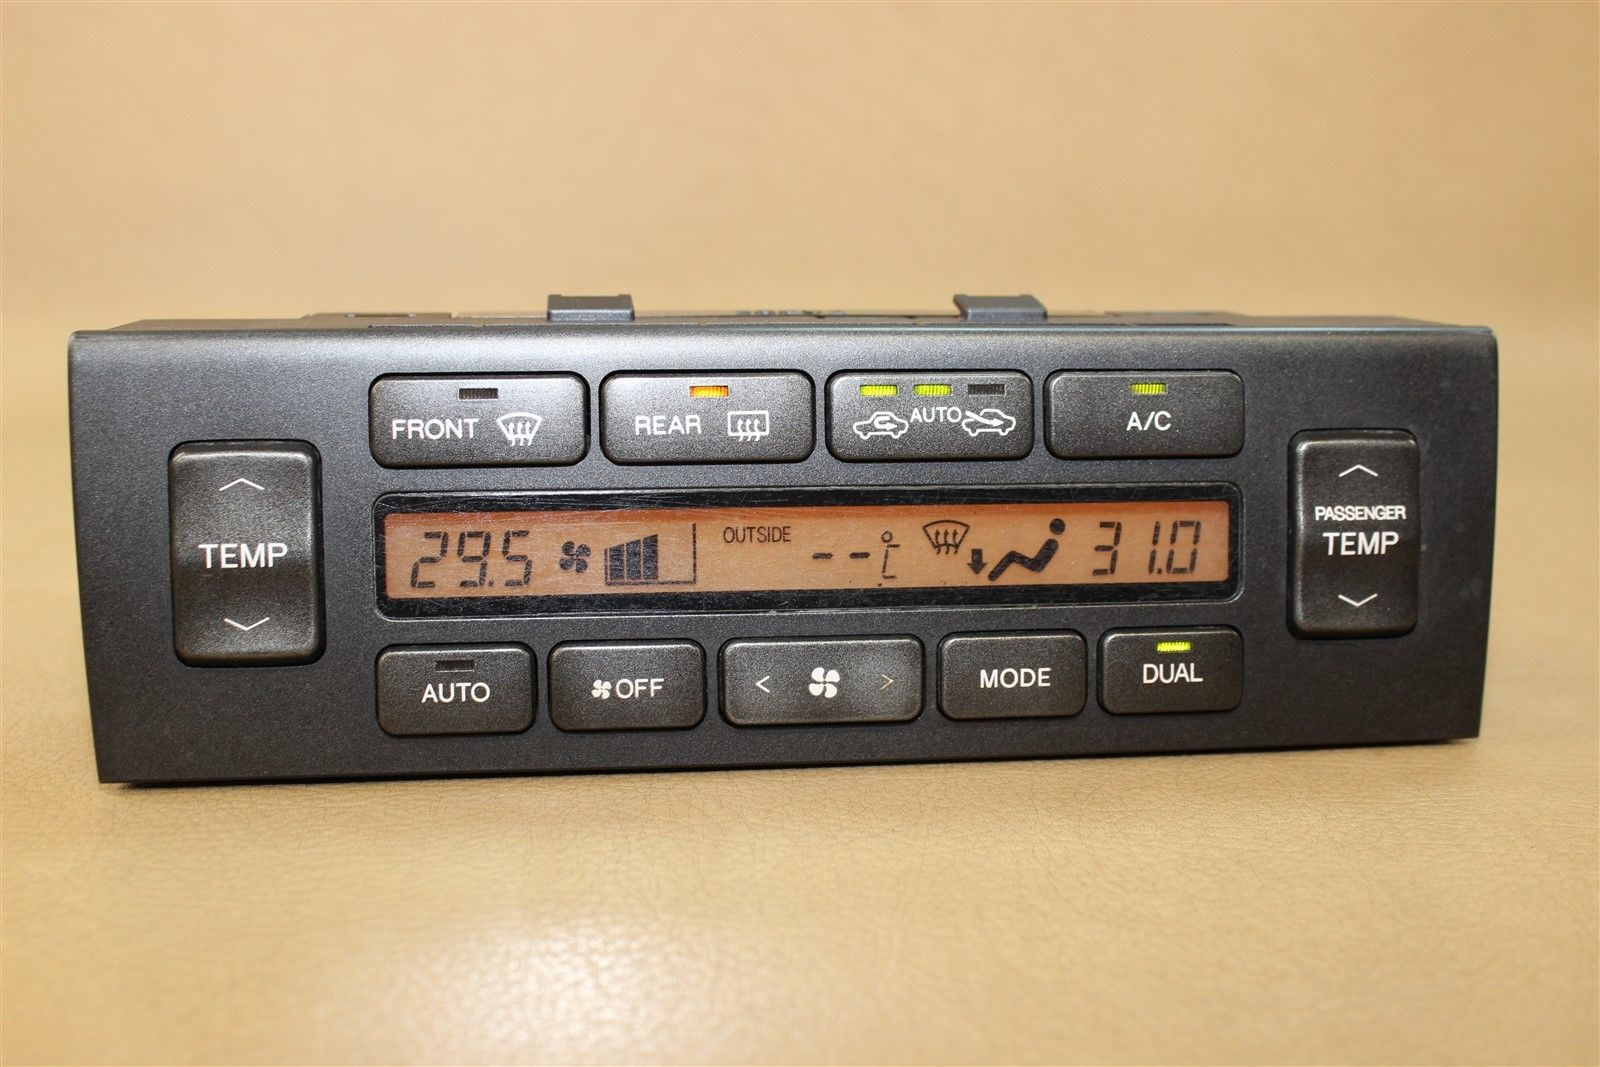 01-05 LEXUS GS300 GS430 DIGITAL CLIMATE TEMPERATURE HEATER CONTROL 55900-3A288 Does Not Apply 1890 - 12.22.16